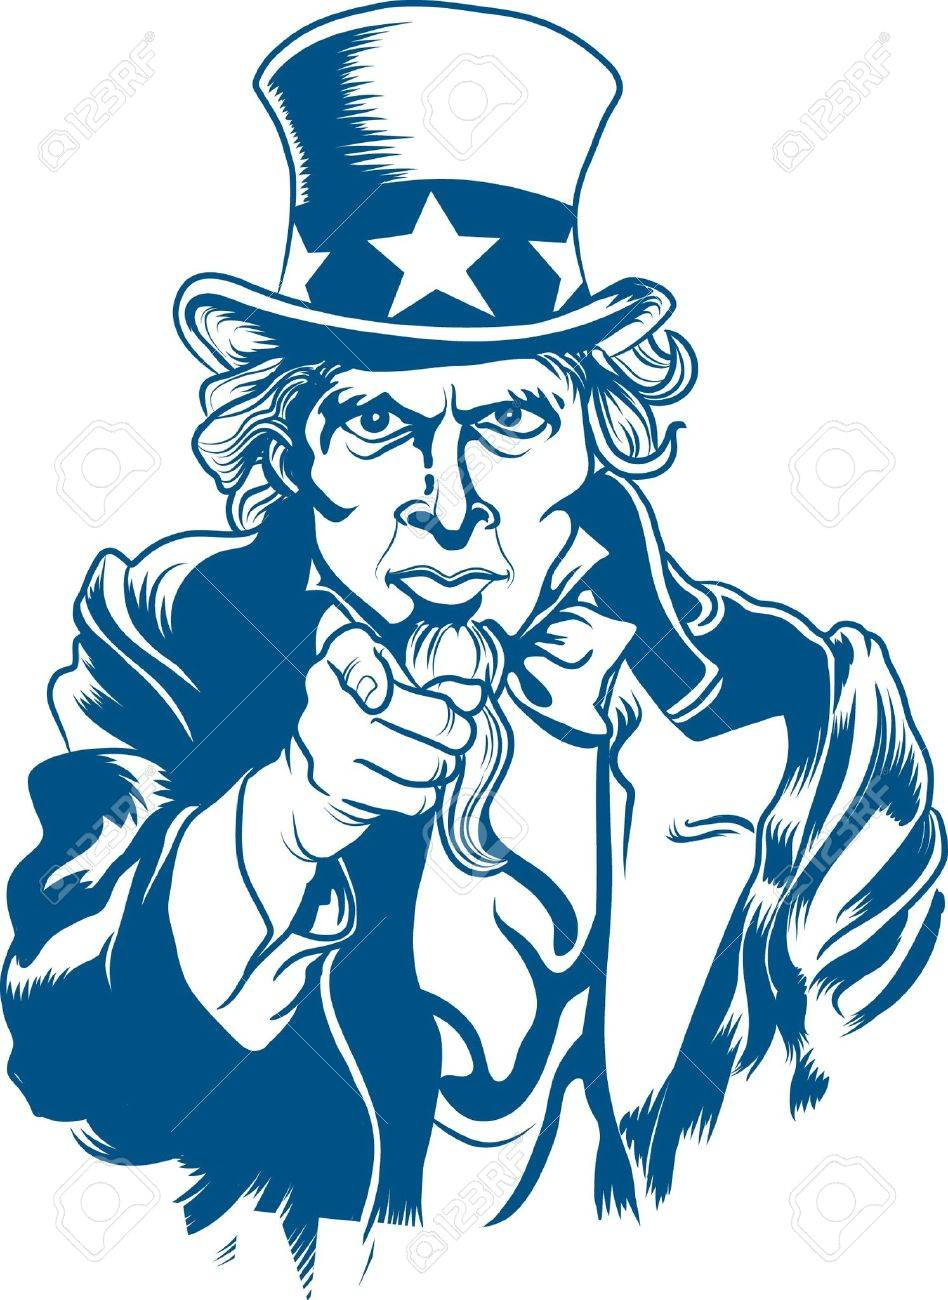 vector illustration of uncle sam royalty free cliparts vectors and rh 123rf com uncle sam logo vector uncle sam vector image